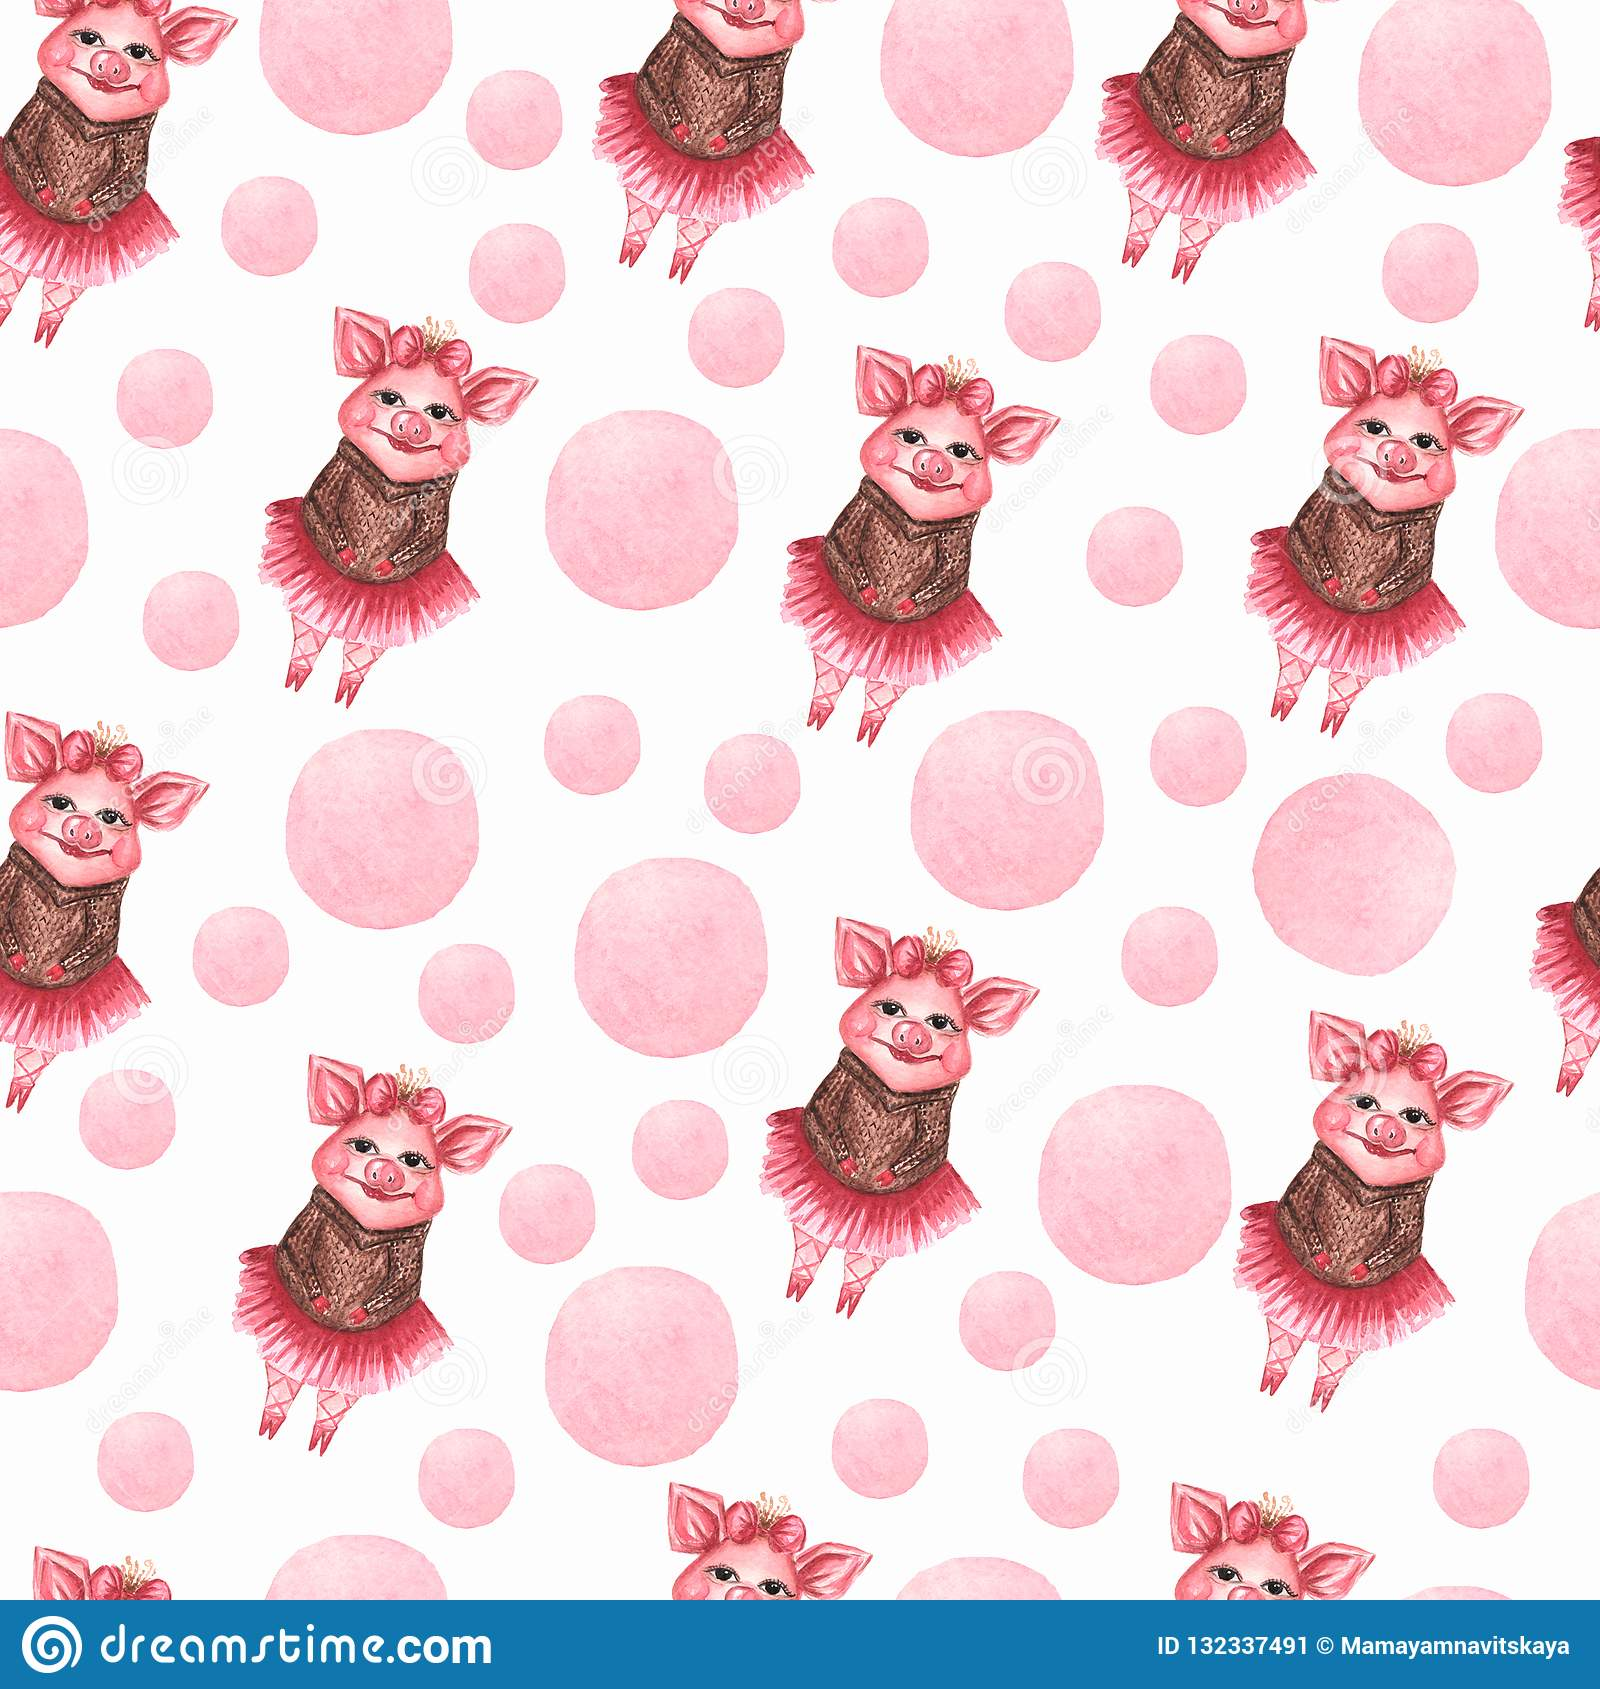 Watercolor Cute Pigs Characters Set Isolated On White Inspired By Farm Animals Cartoon Little Piggy Illustrations Perfect For Card Making Birthday